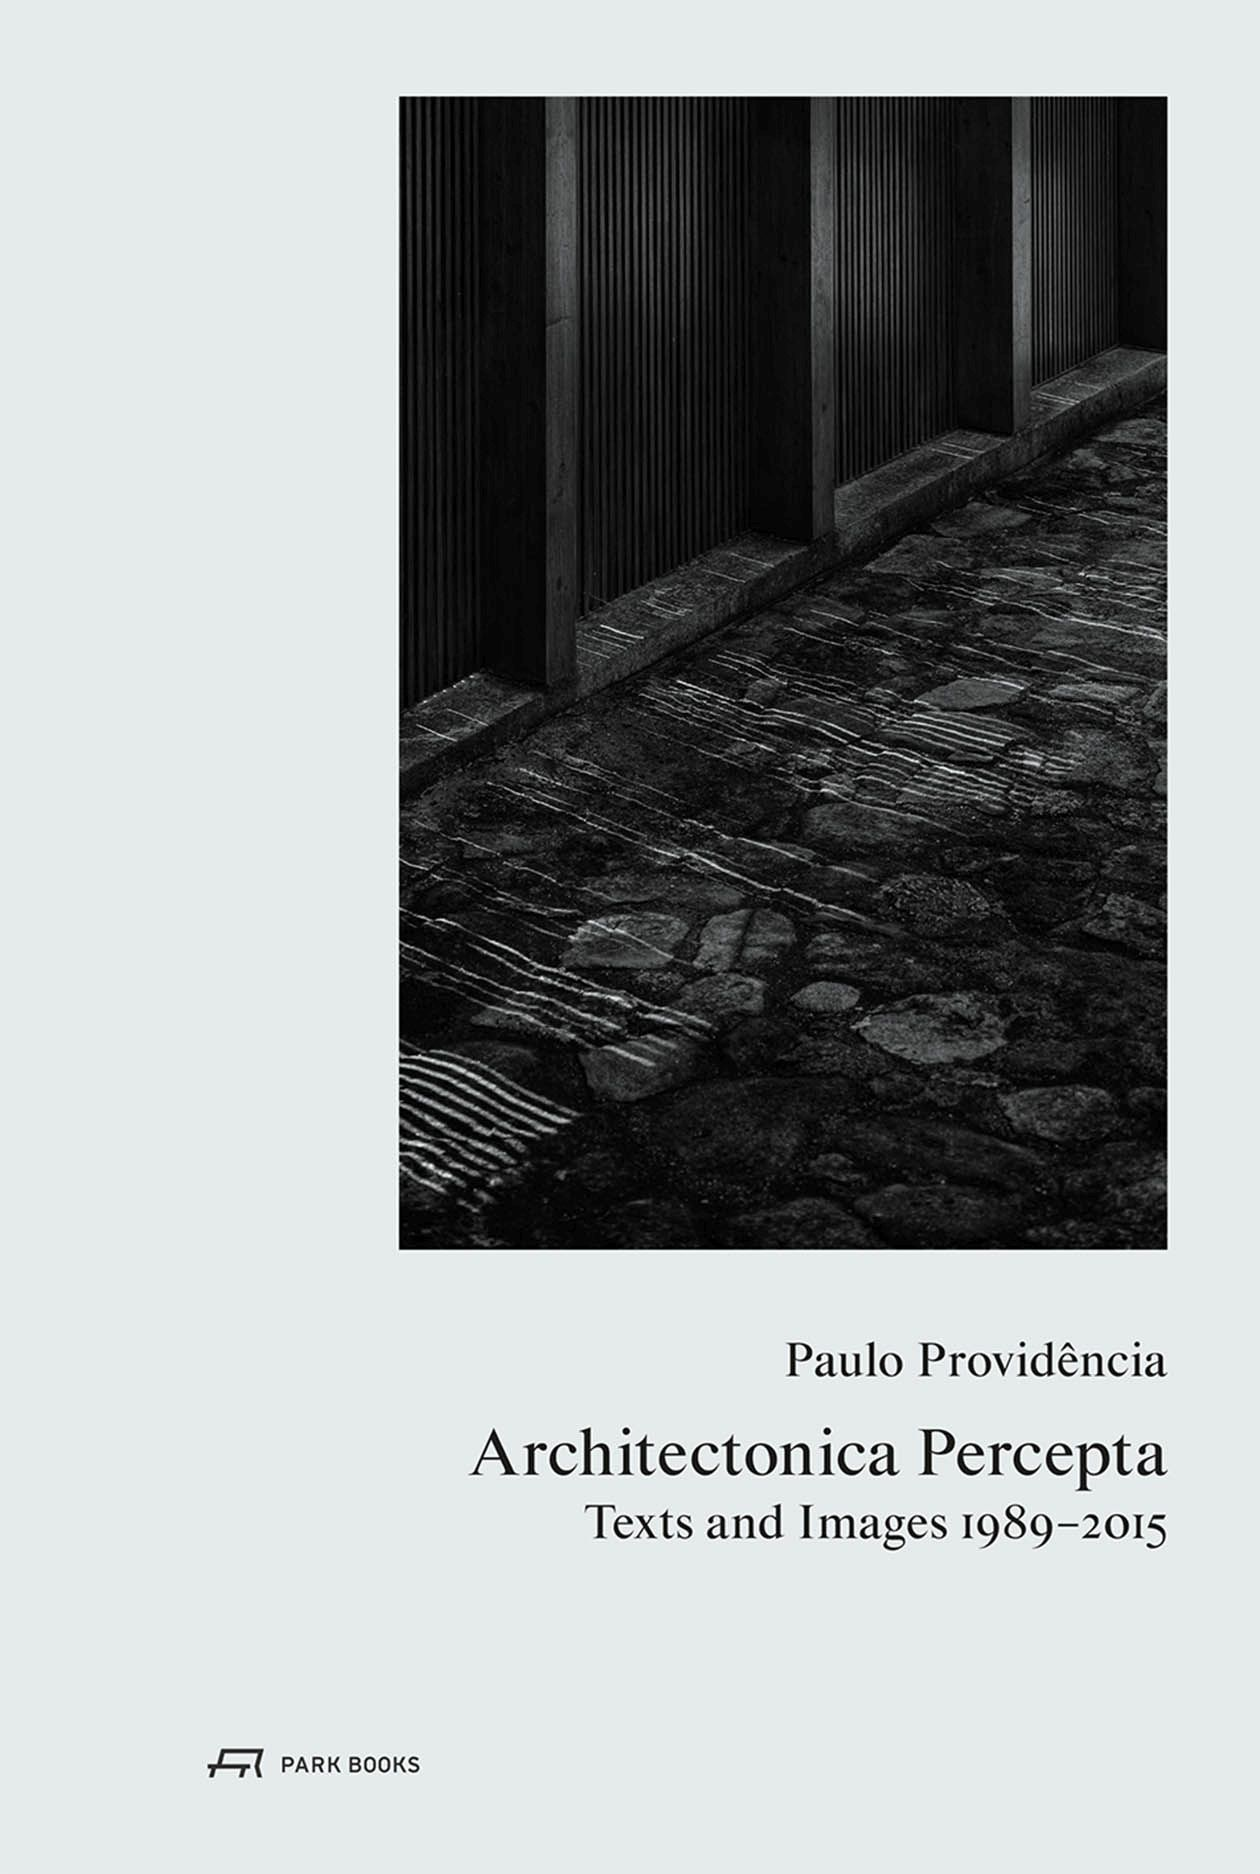 Paulo Providência-Architectonica Percepta: Texts and Images 1989-2015